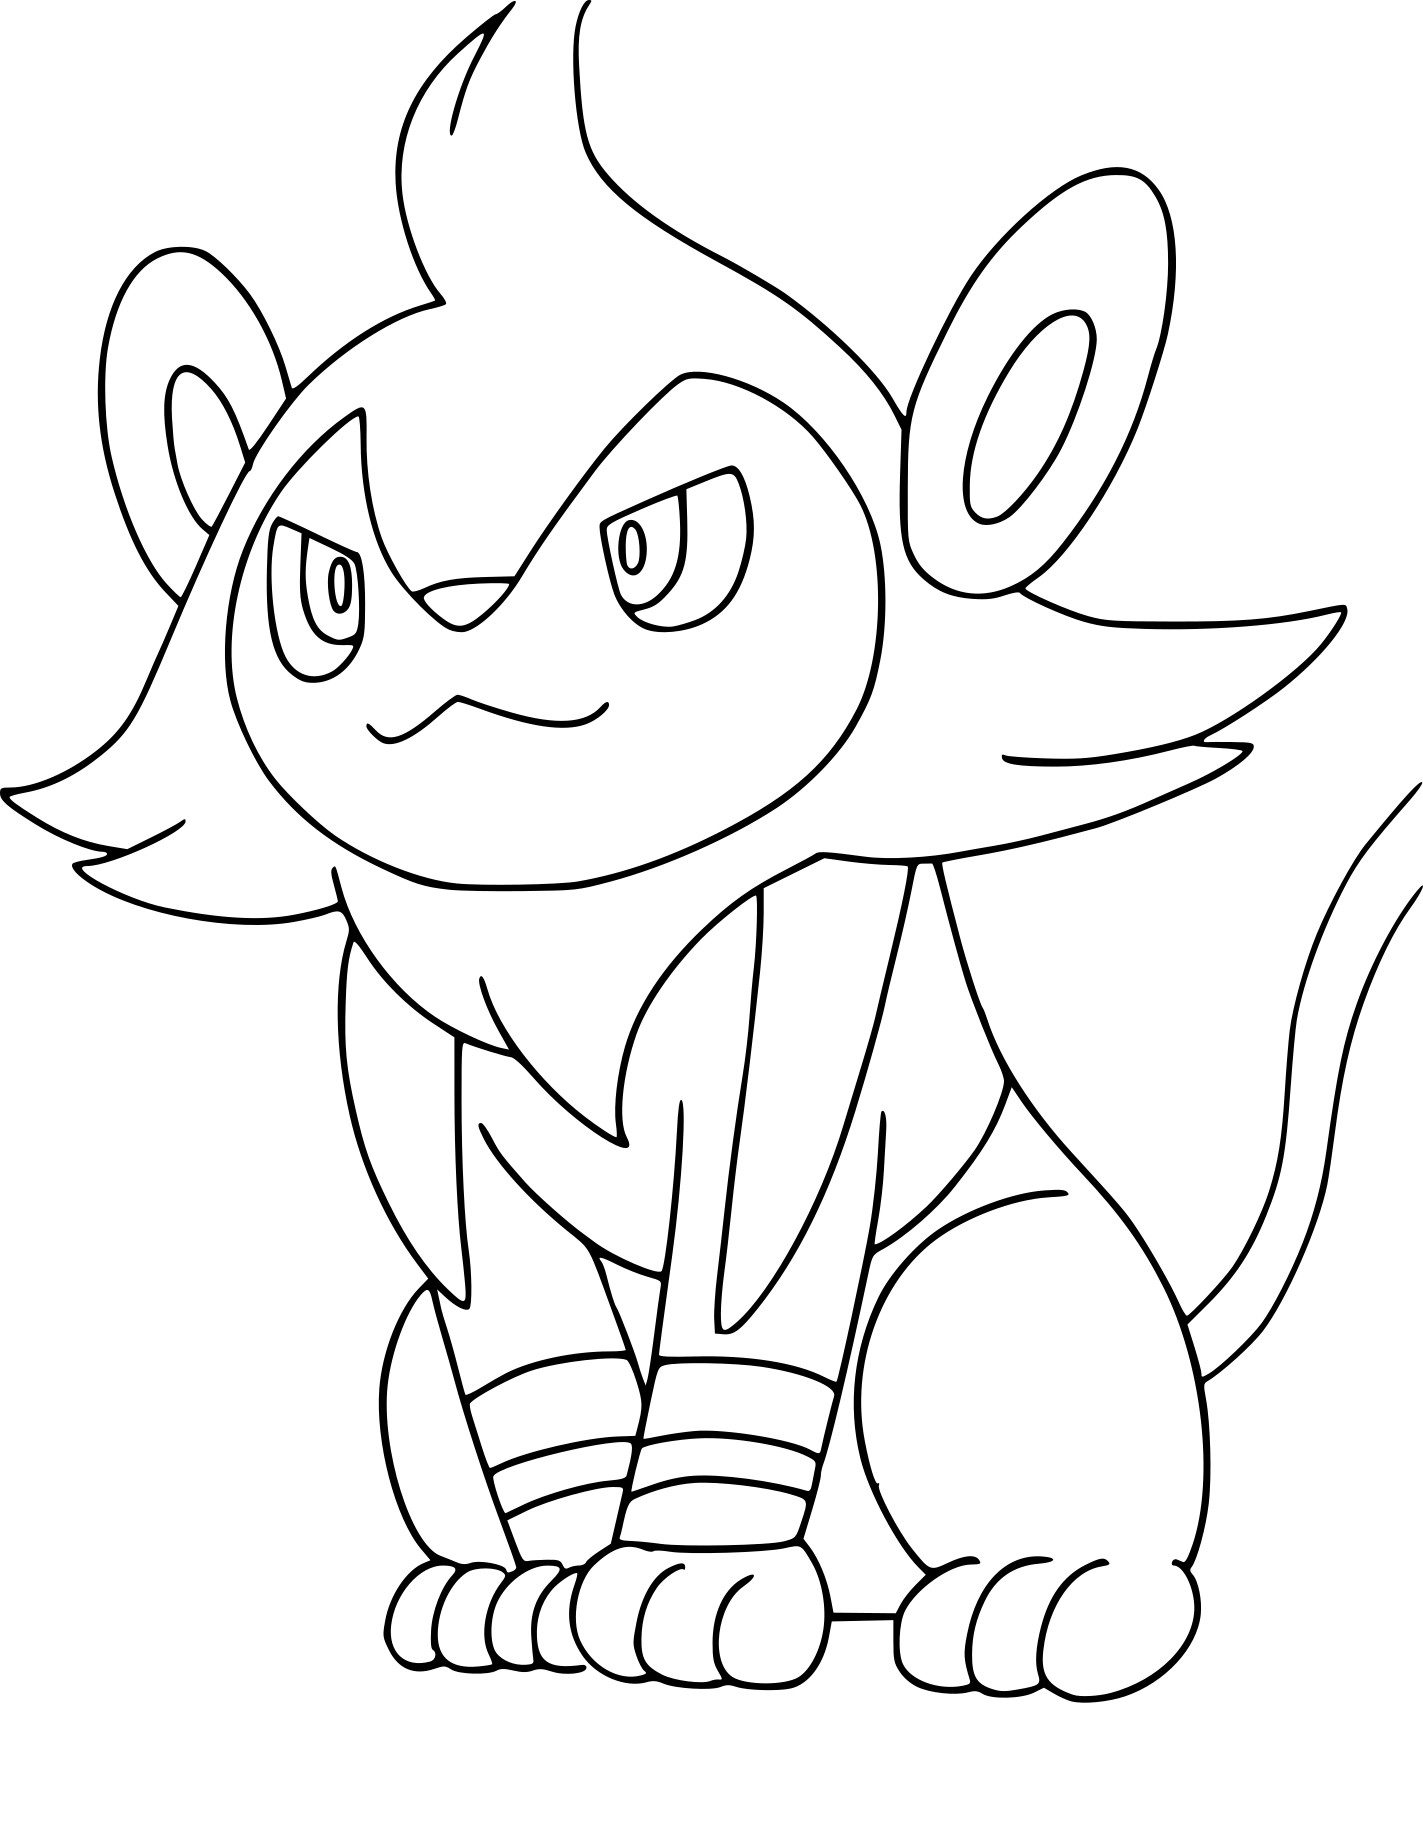 riolu pokemon coloring pages - photo#25